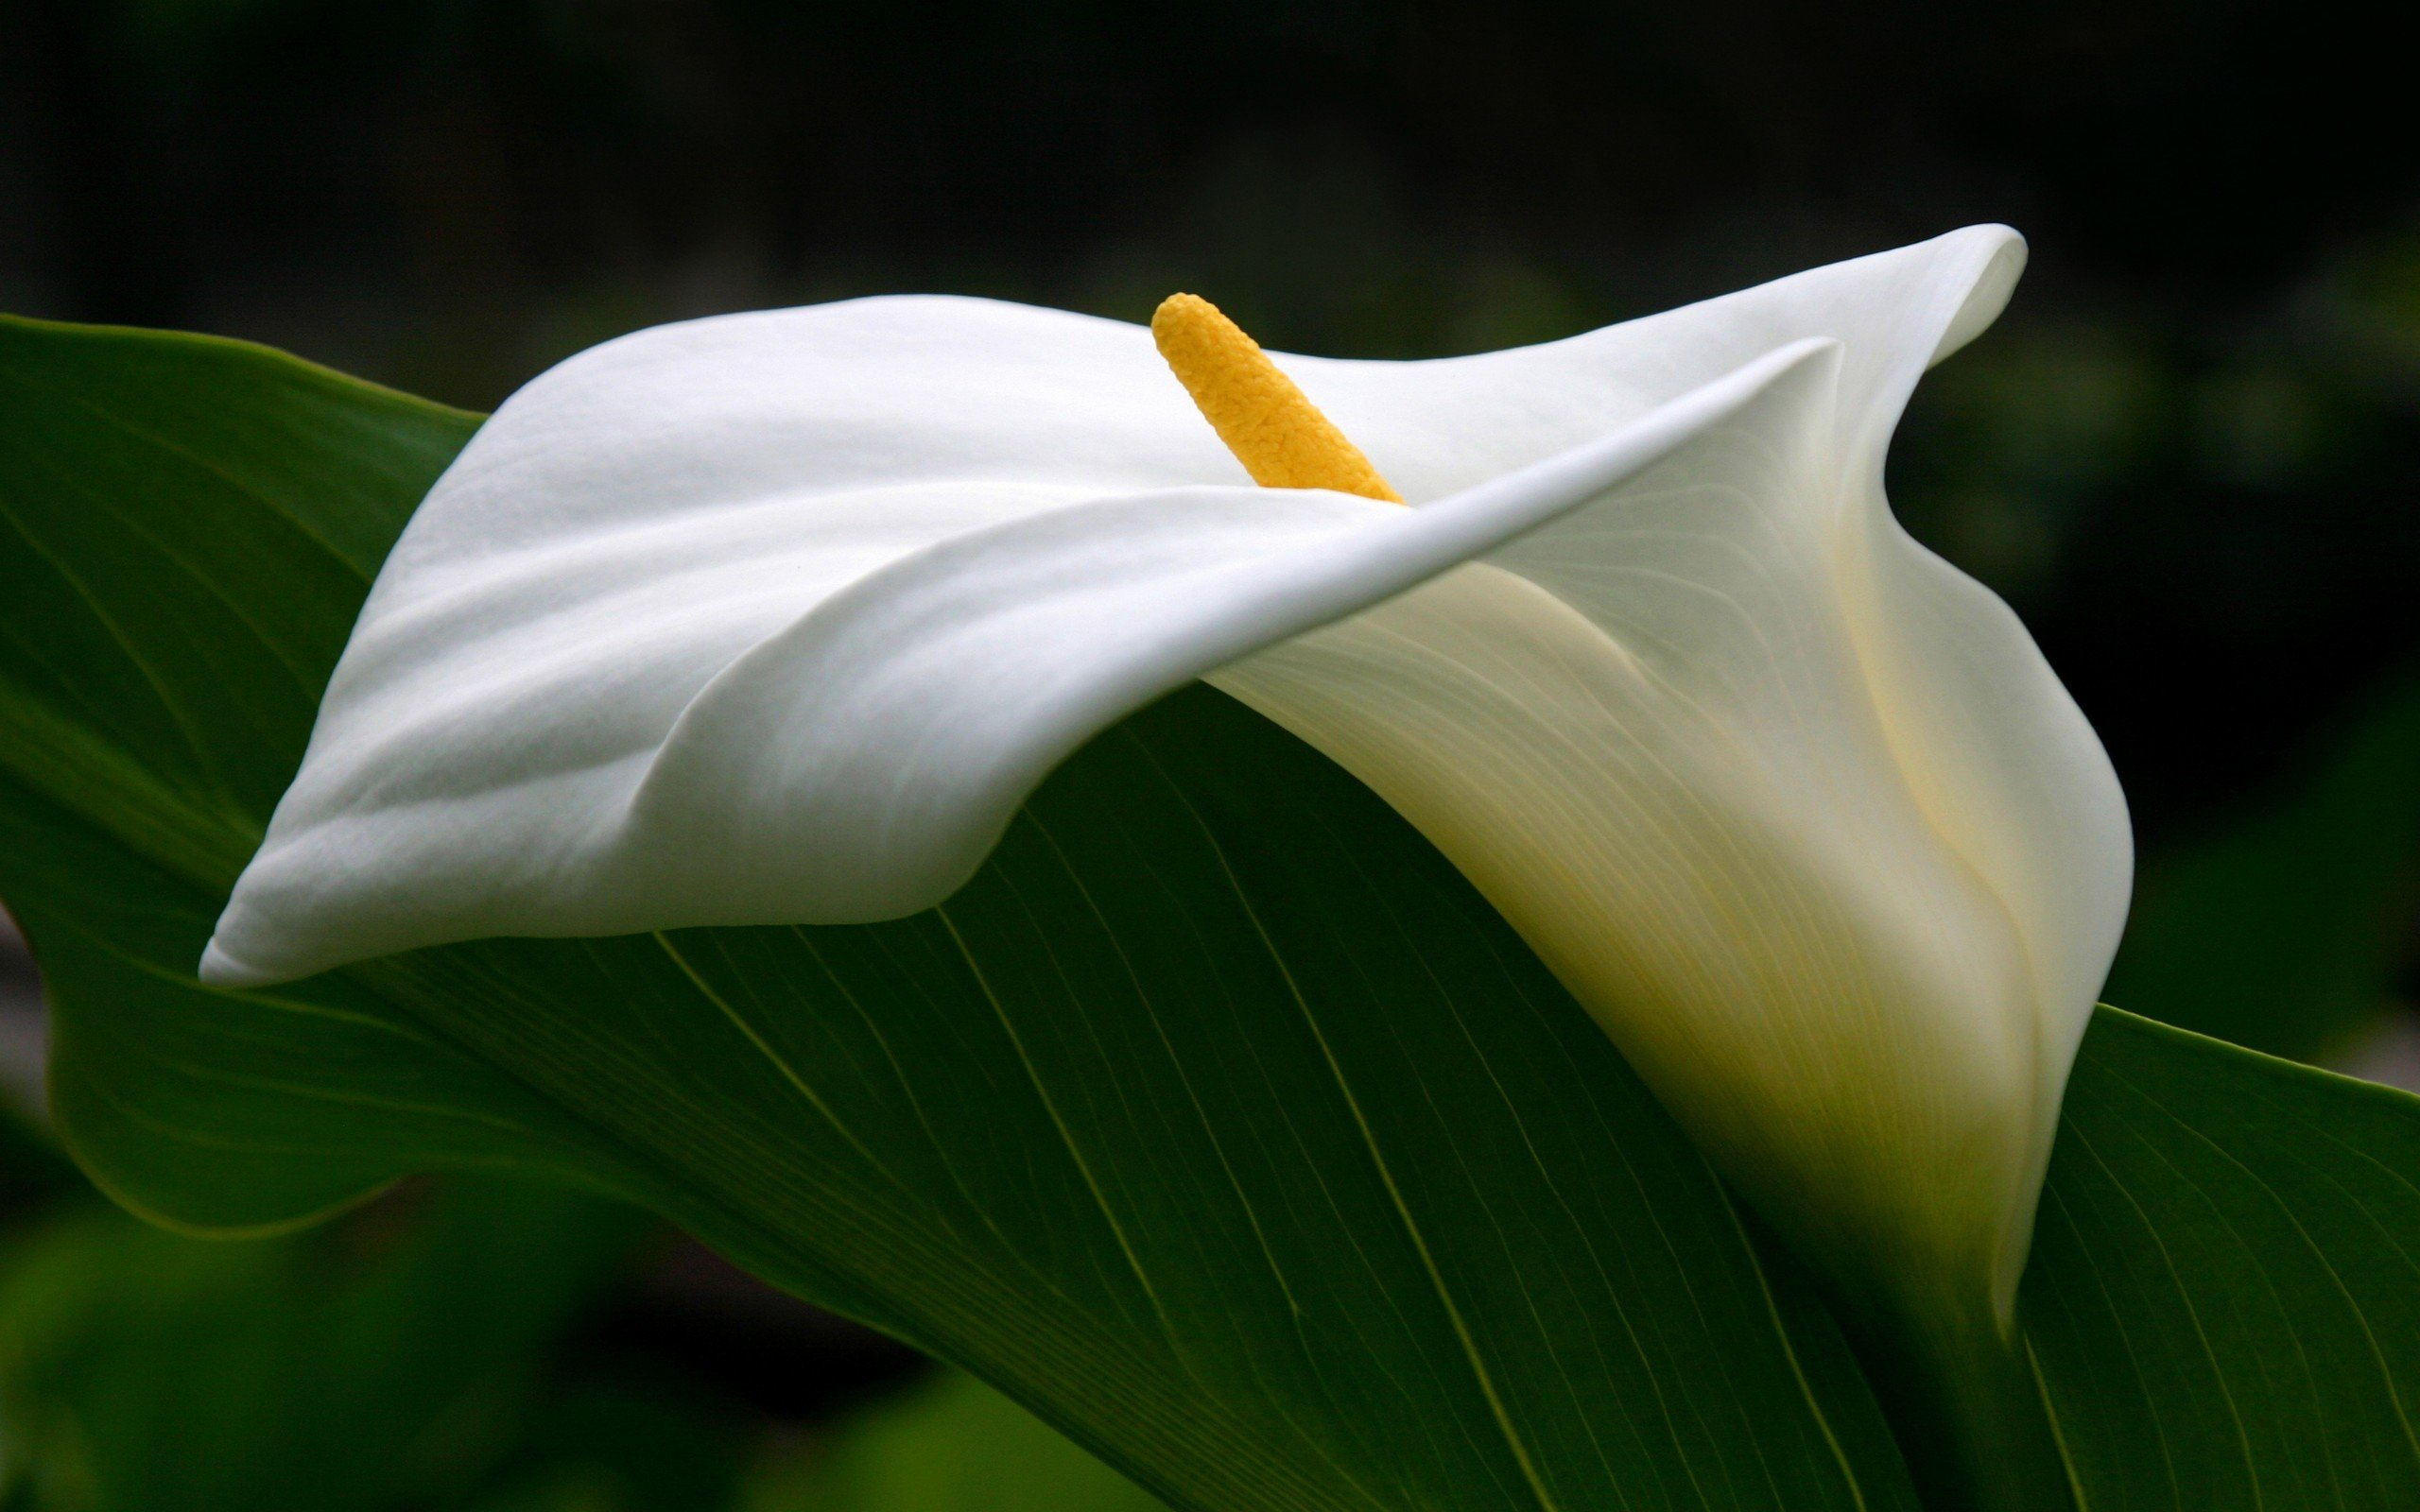 Calla Lily wallpapers HD for desktop backgrounds